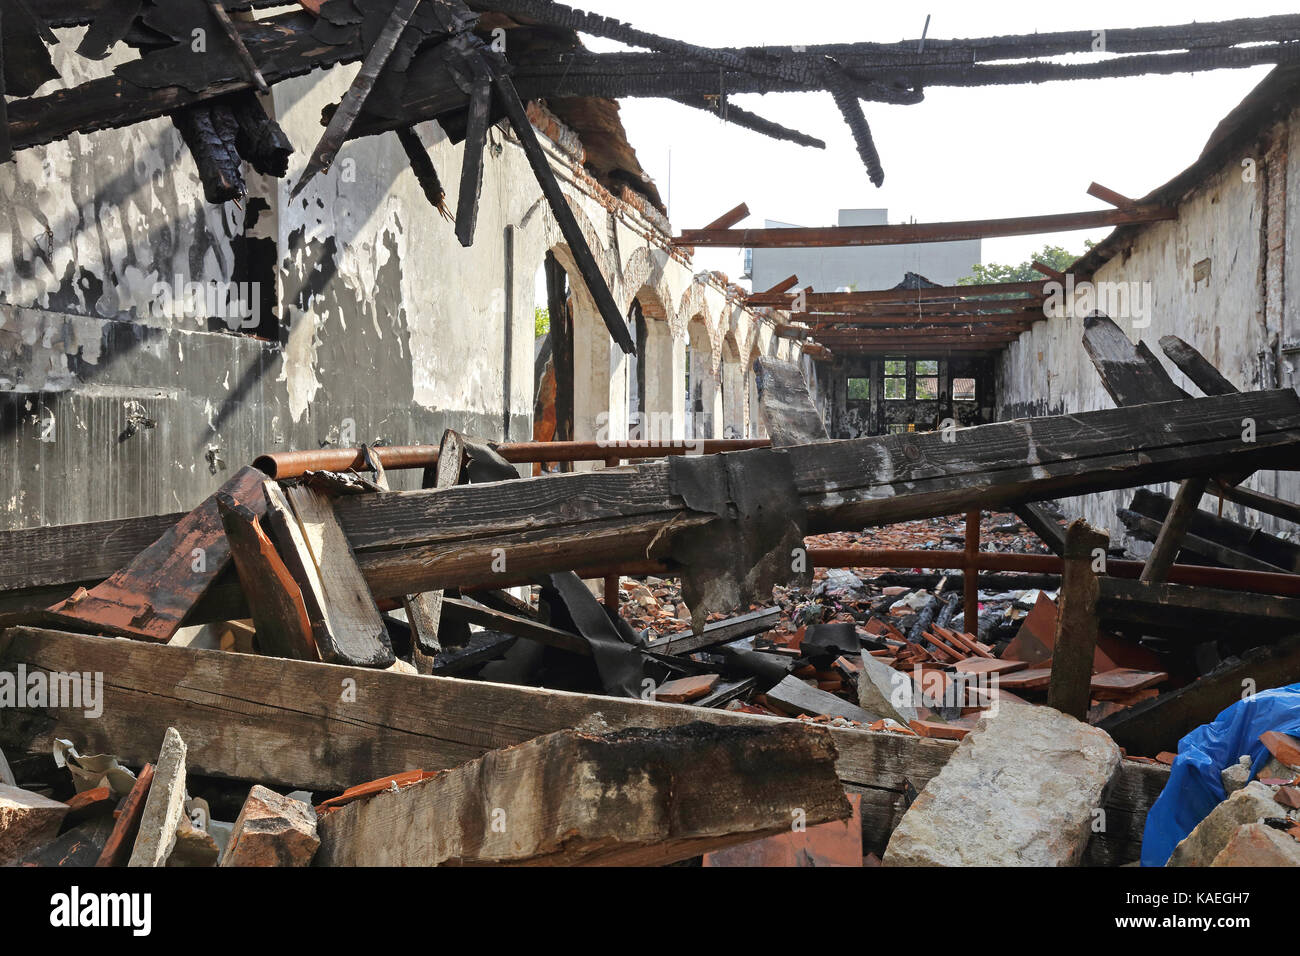 Burned Wooden Structure in Factory After Fire Disaster - Stock Image